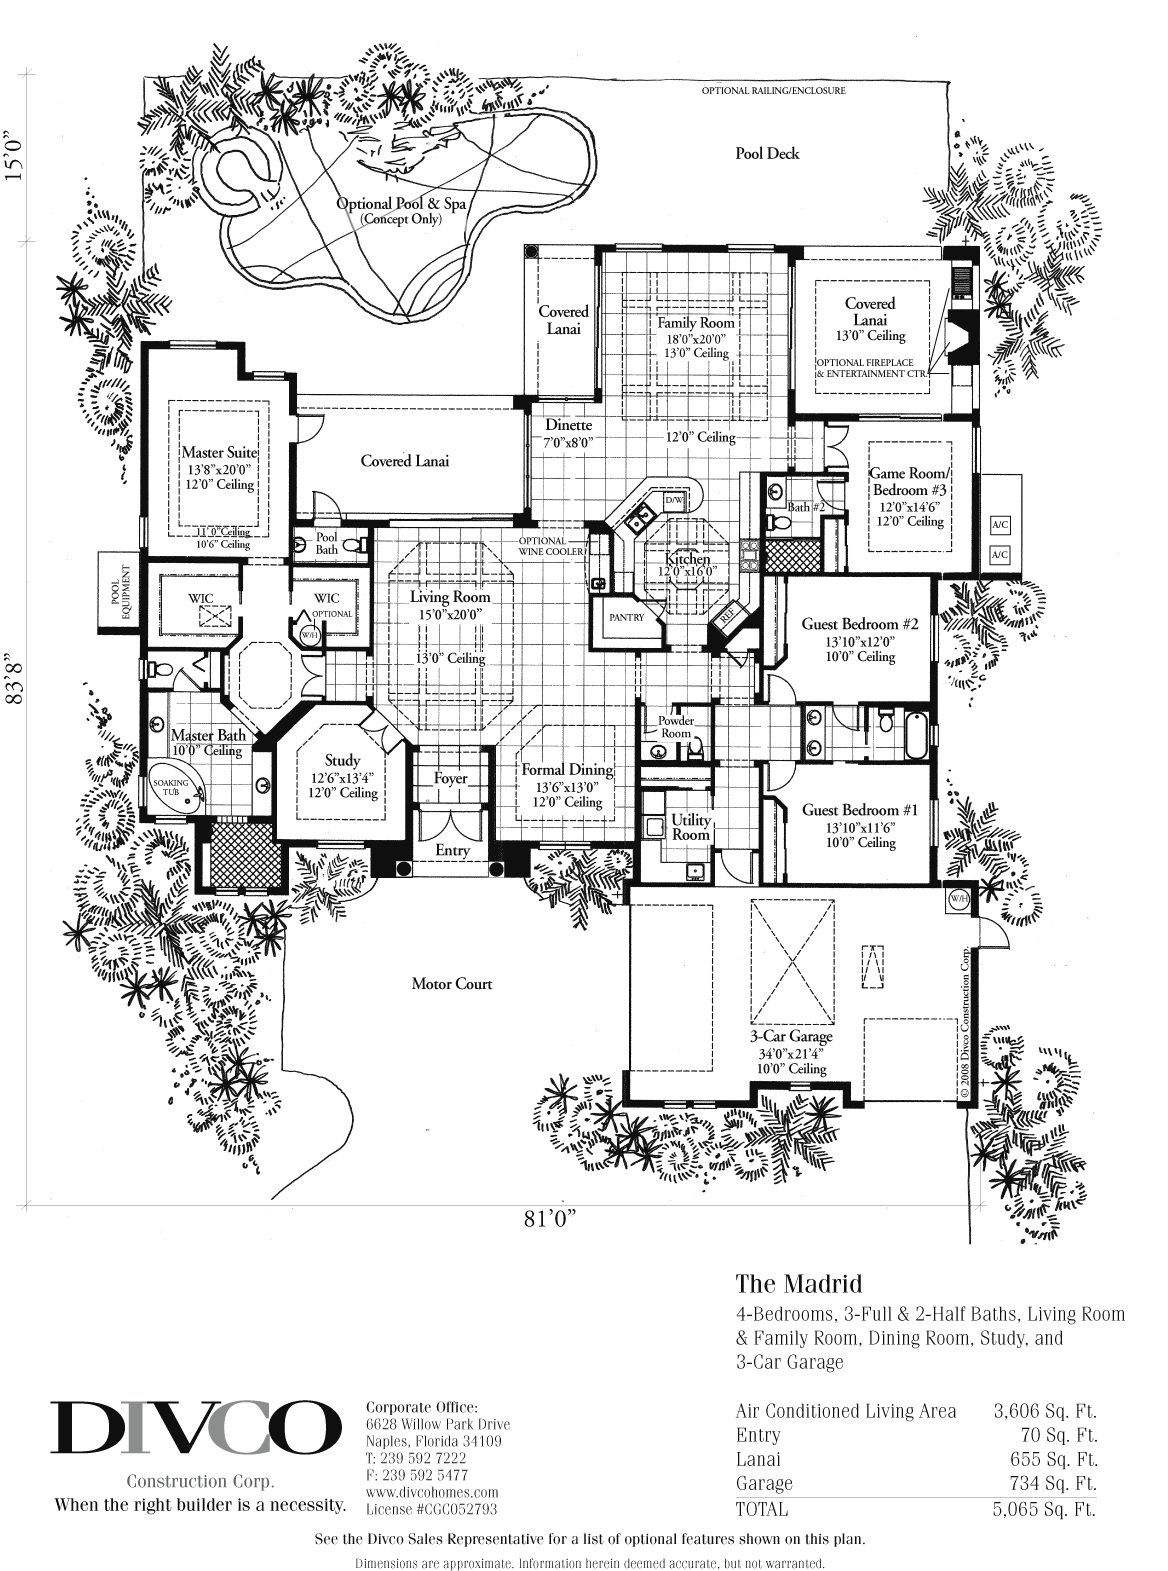 Luxury Home Floor Plans Madrid Floorplan Floorplan Of A Luxury Home By Divco Construction Naples Florida Luxury Floor Plans Floor Plan Layout Floor Plans